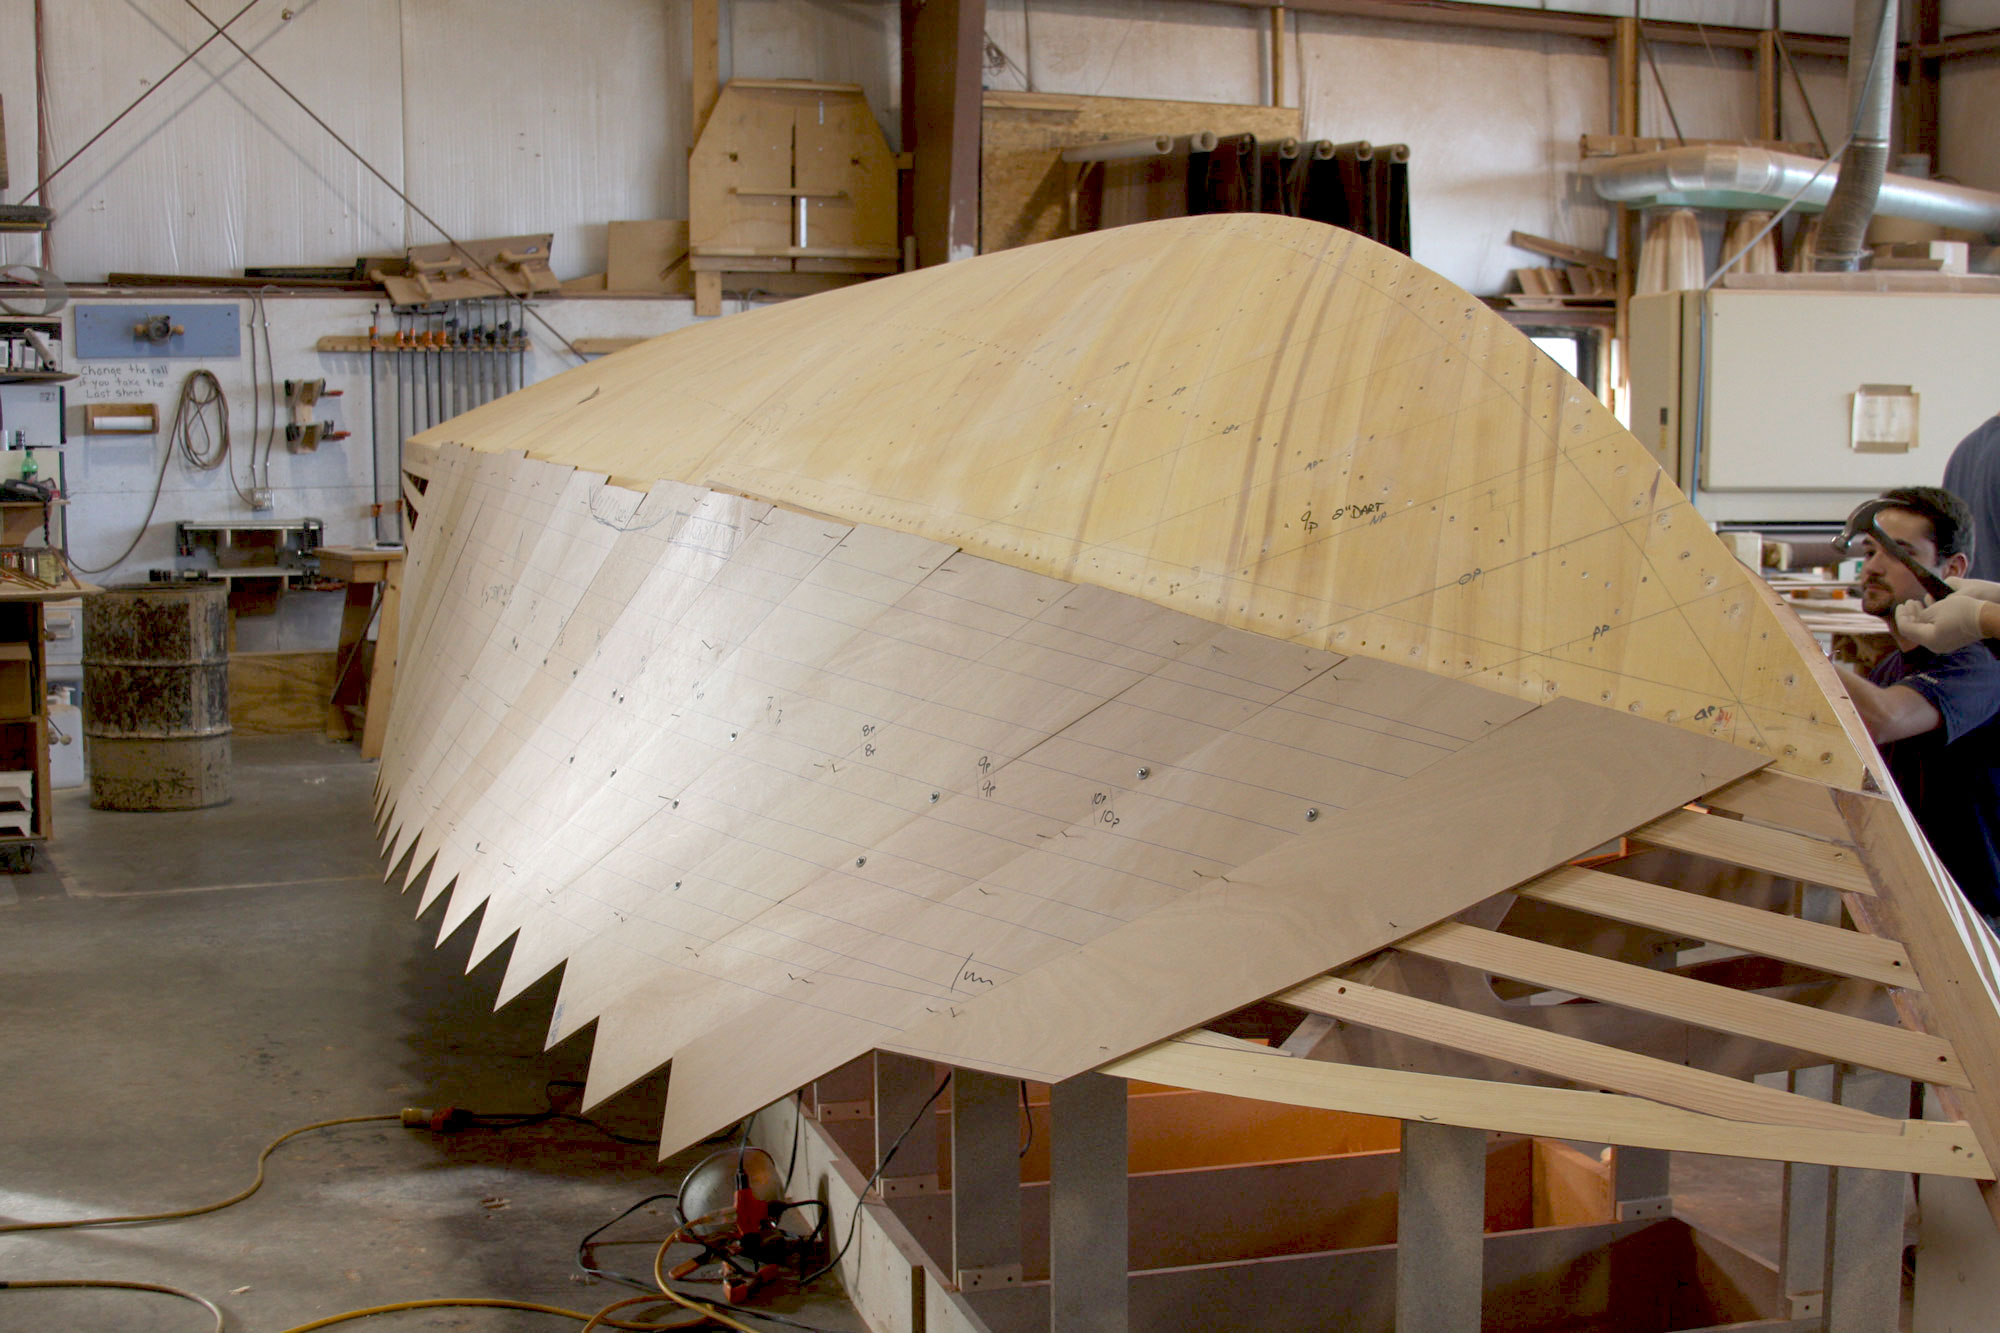 Cold molded planking being secured on hull